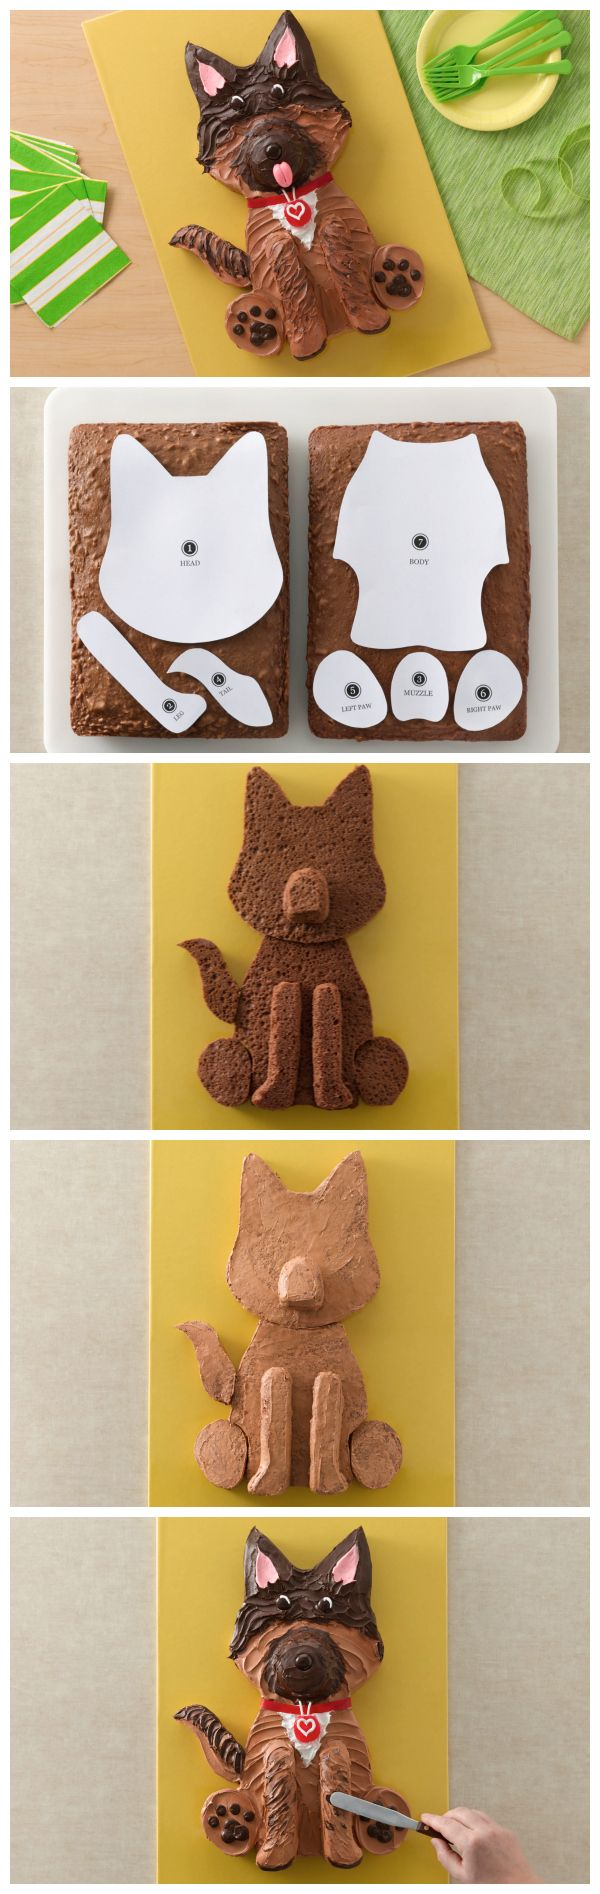 German Shepherd Dog Cake with template!